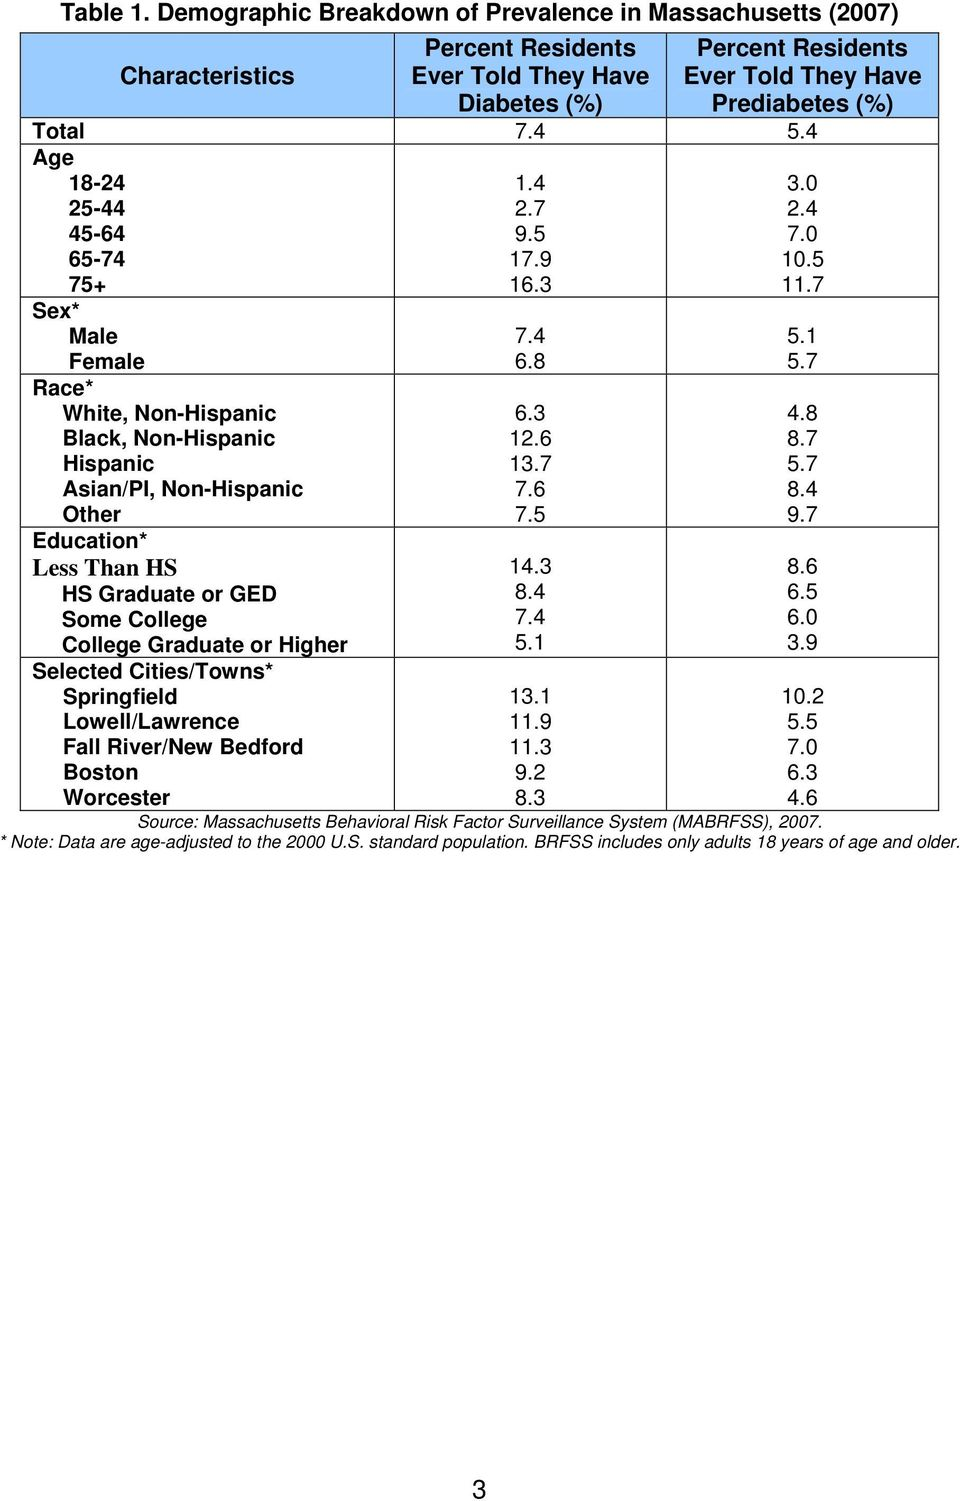 7 Sex* Male Female Race* White, Non-Hispanic Black, Non-Hispanic Hispanic Asian/PI, Non-Hispanic Other Education* Less Than HS HS Graduate or GED Some College College Graduate or Higher Selected